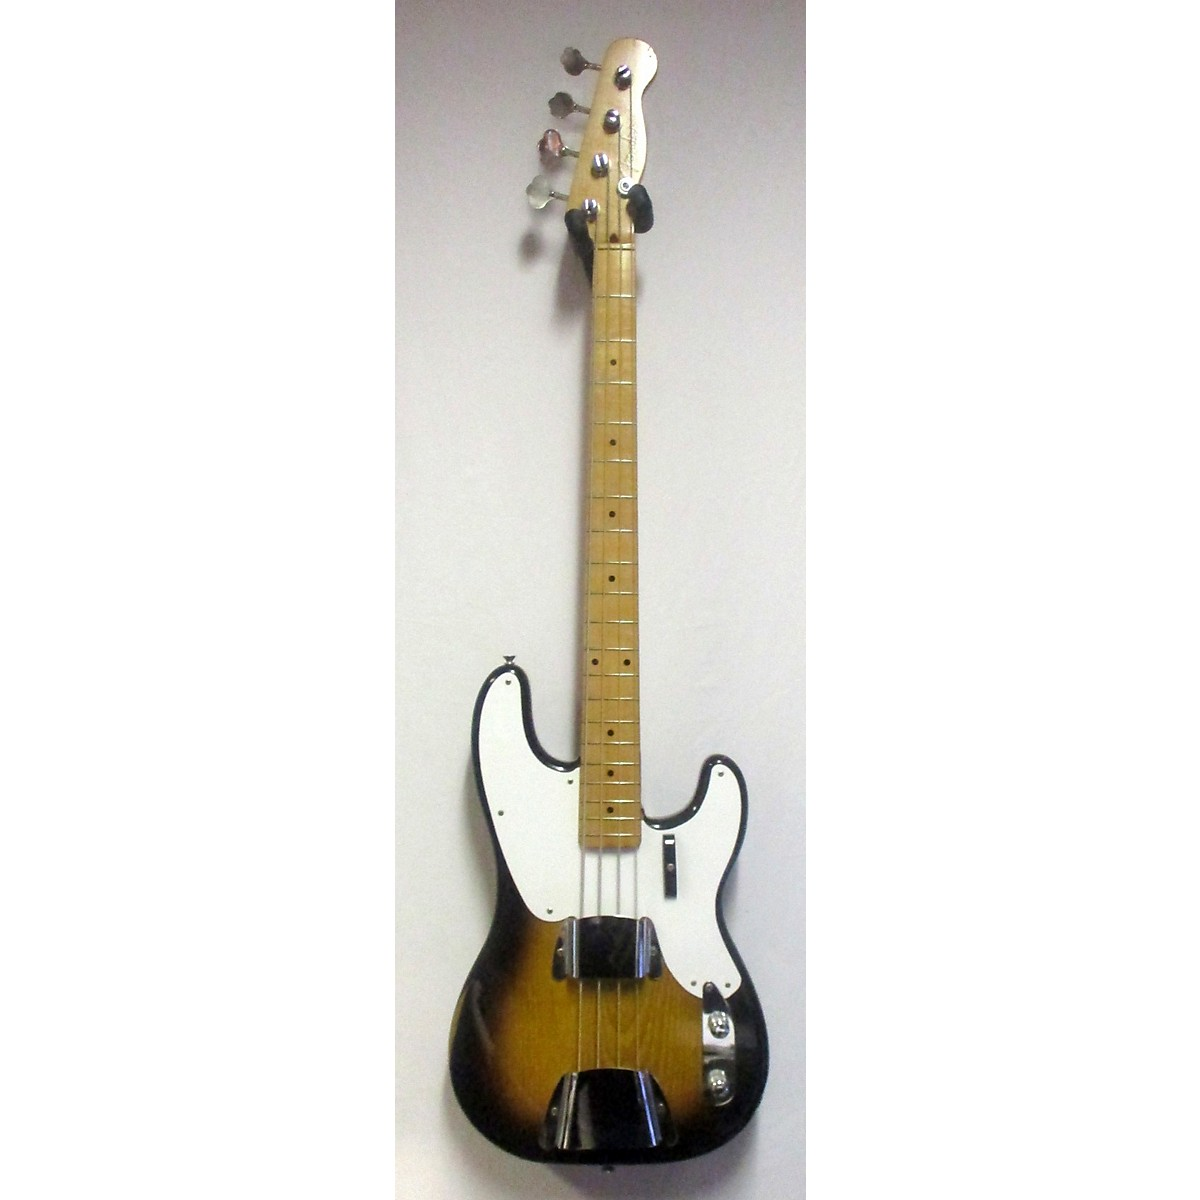 Fender 1956 Precison Bass Electric Bass Guitar